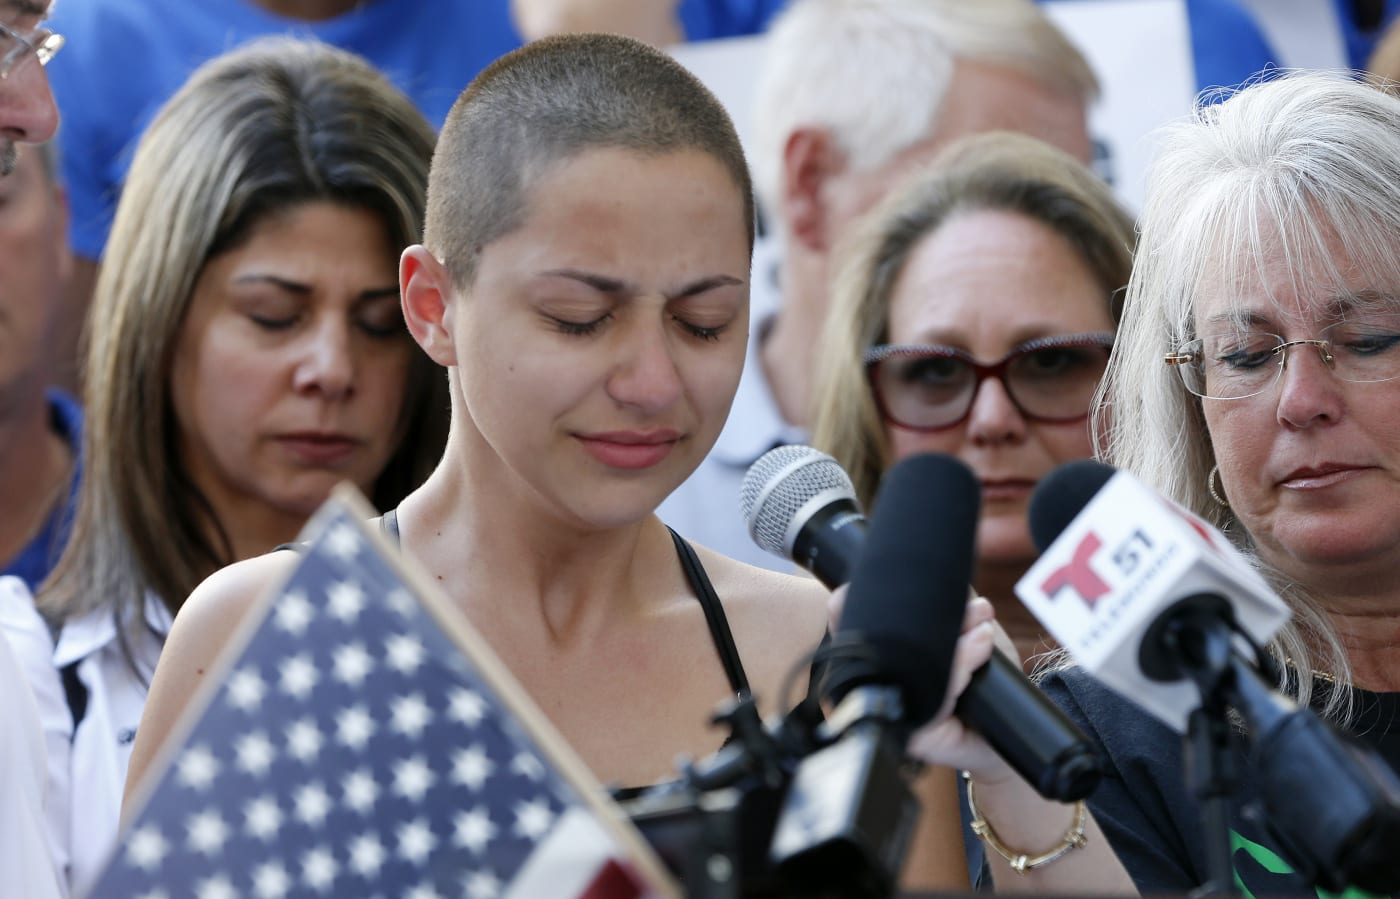 This is a photo of Florida shooting survivor and gun control advocate Emma Gonzalez